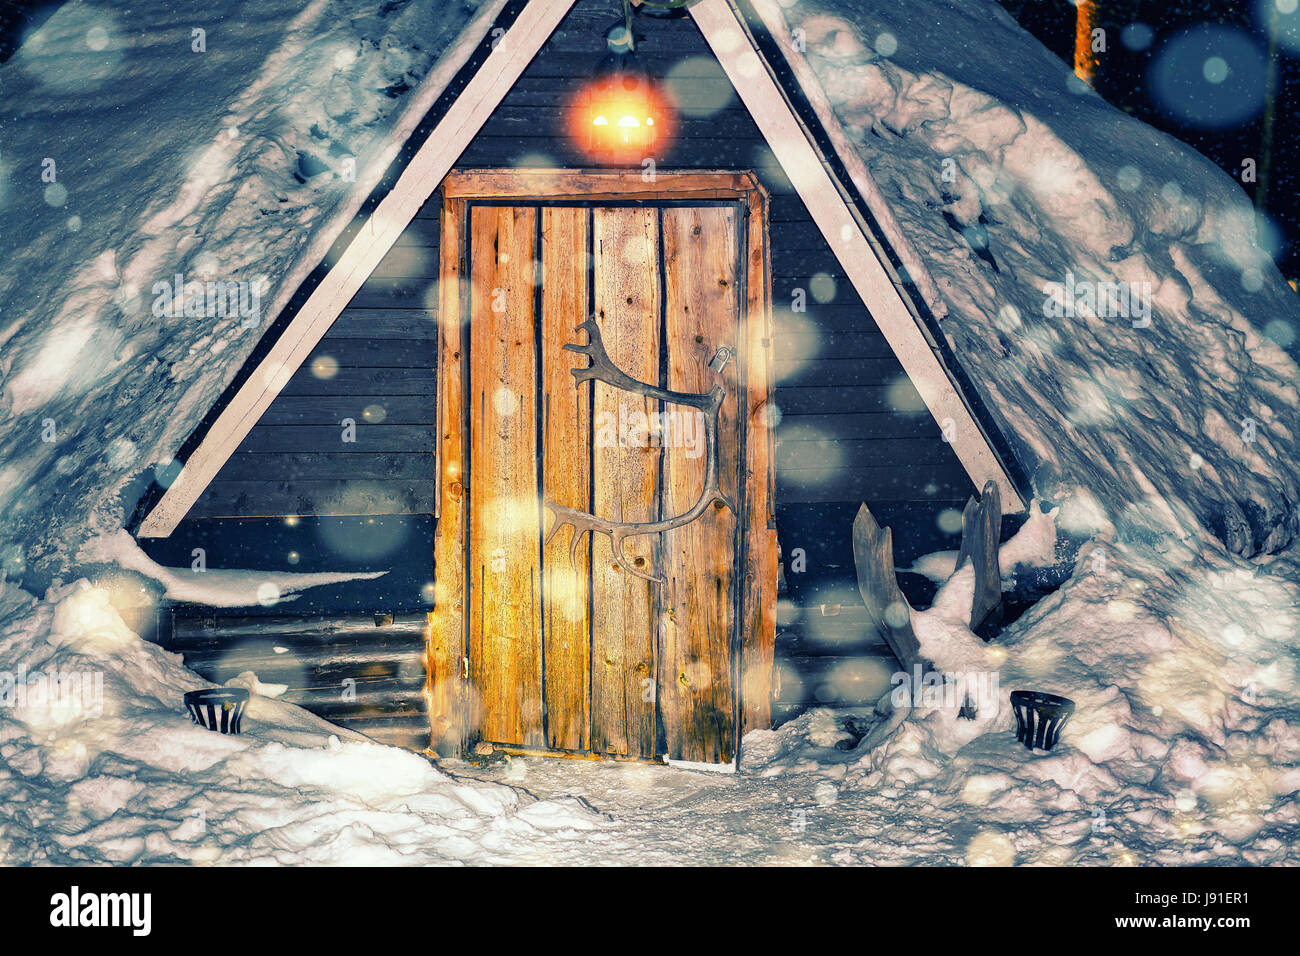 Lappish traditional house at the reindeer farm in winter Rovaniemi, Lapland, Finland. Night snowfall. Toned - Stock Image